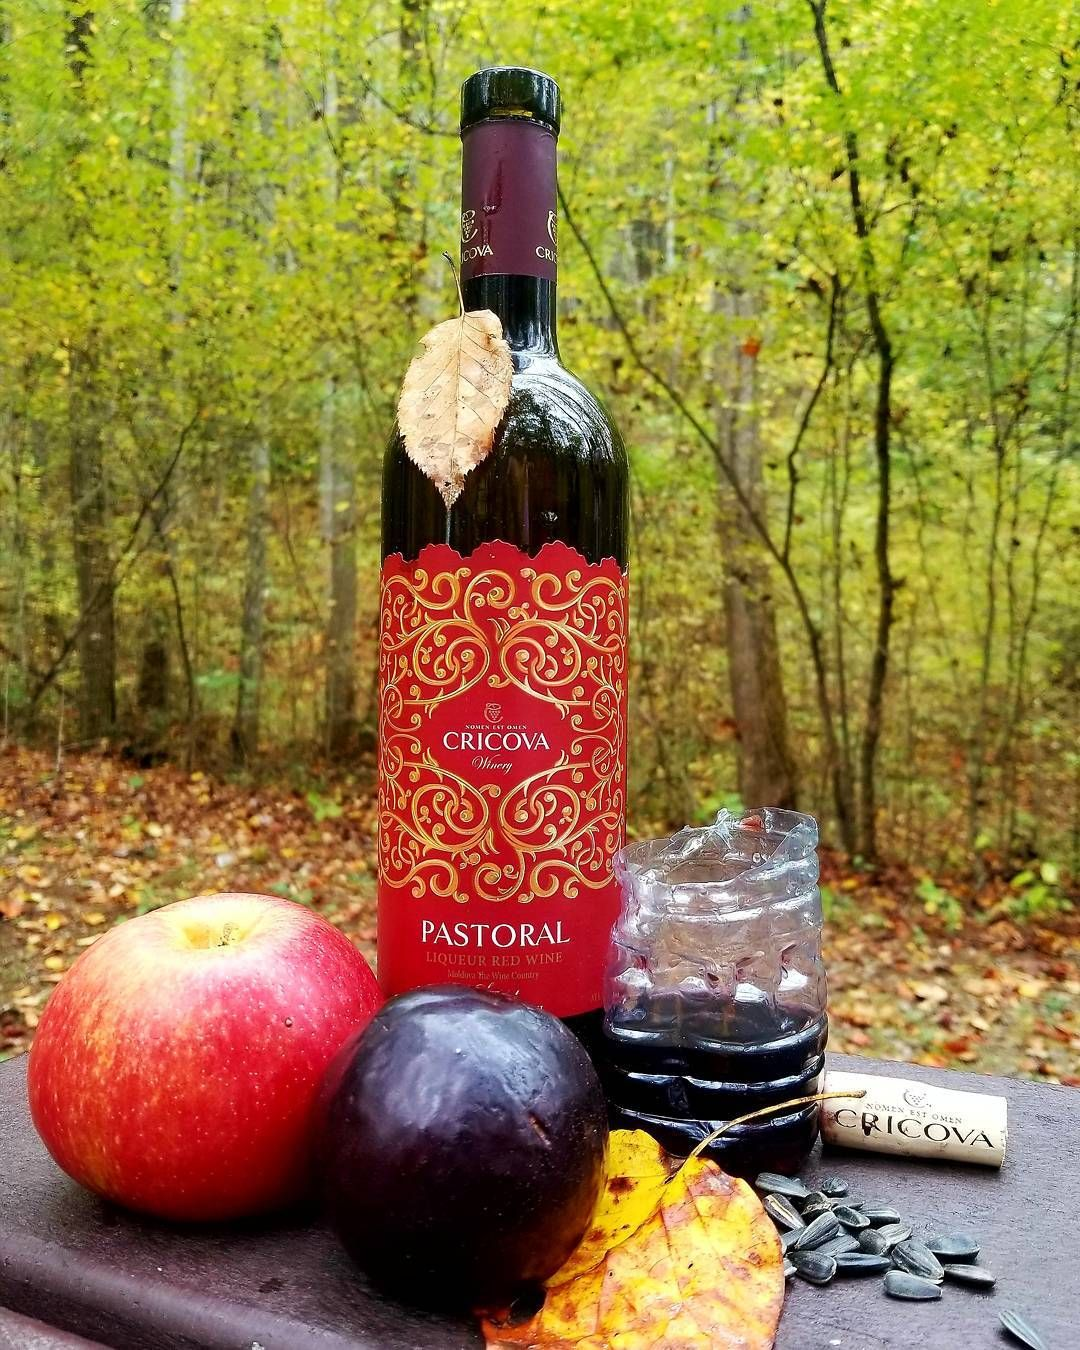 Contest Come Up With The Best Name For This Picture And Win A Bottle Of Cagor Pastoral To Enjoy This Fall Concurs Cine Propune Ce Bottle Cool Names Red Wine